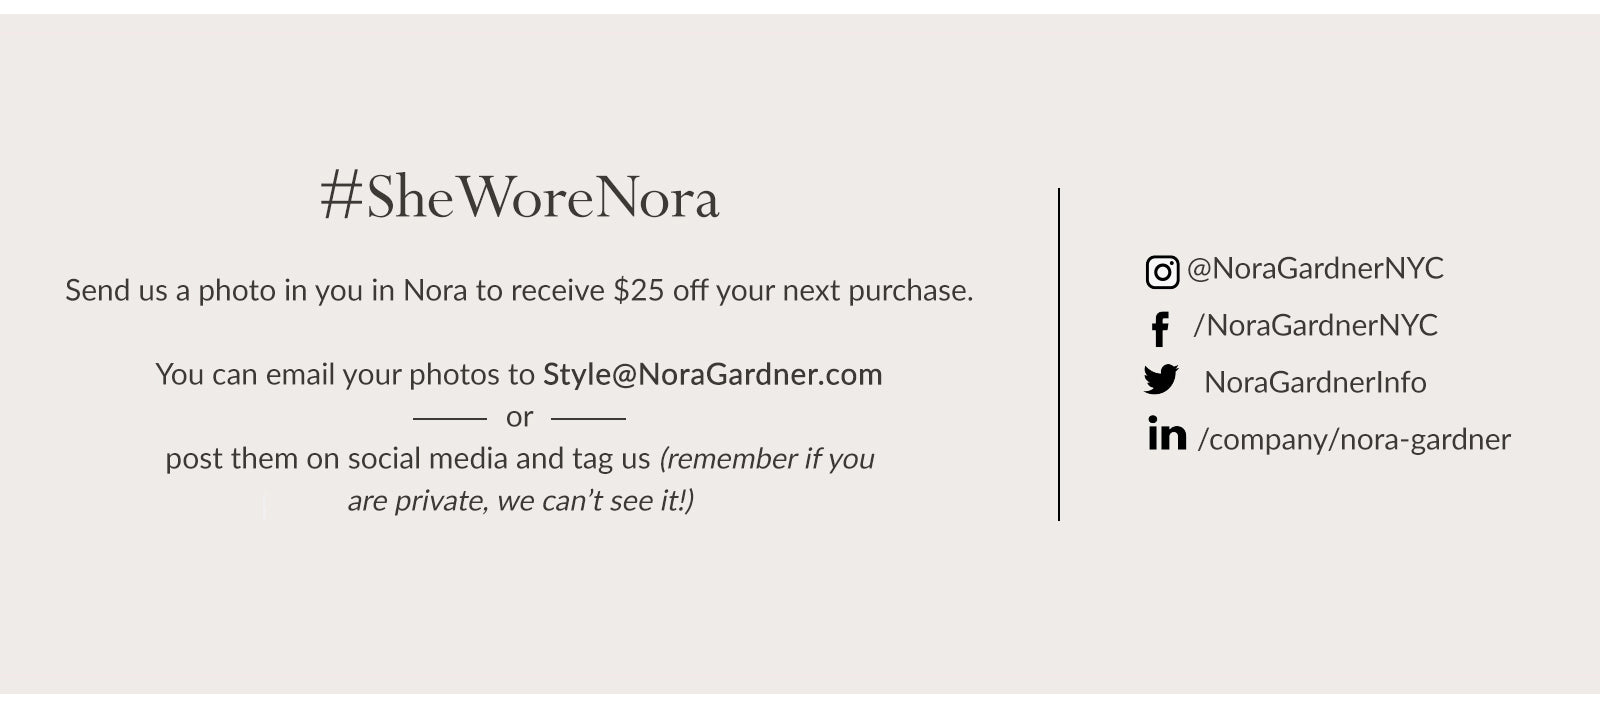 #SheWoreNora The She Wore Nora campaign empowers women to share their style and receive a discount on their next purchase.